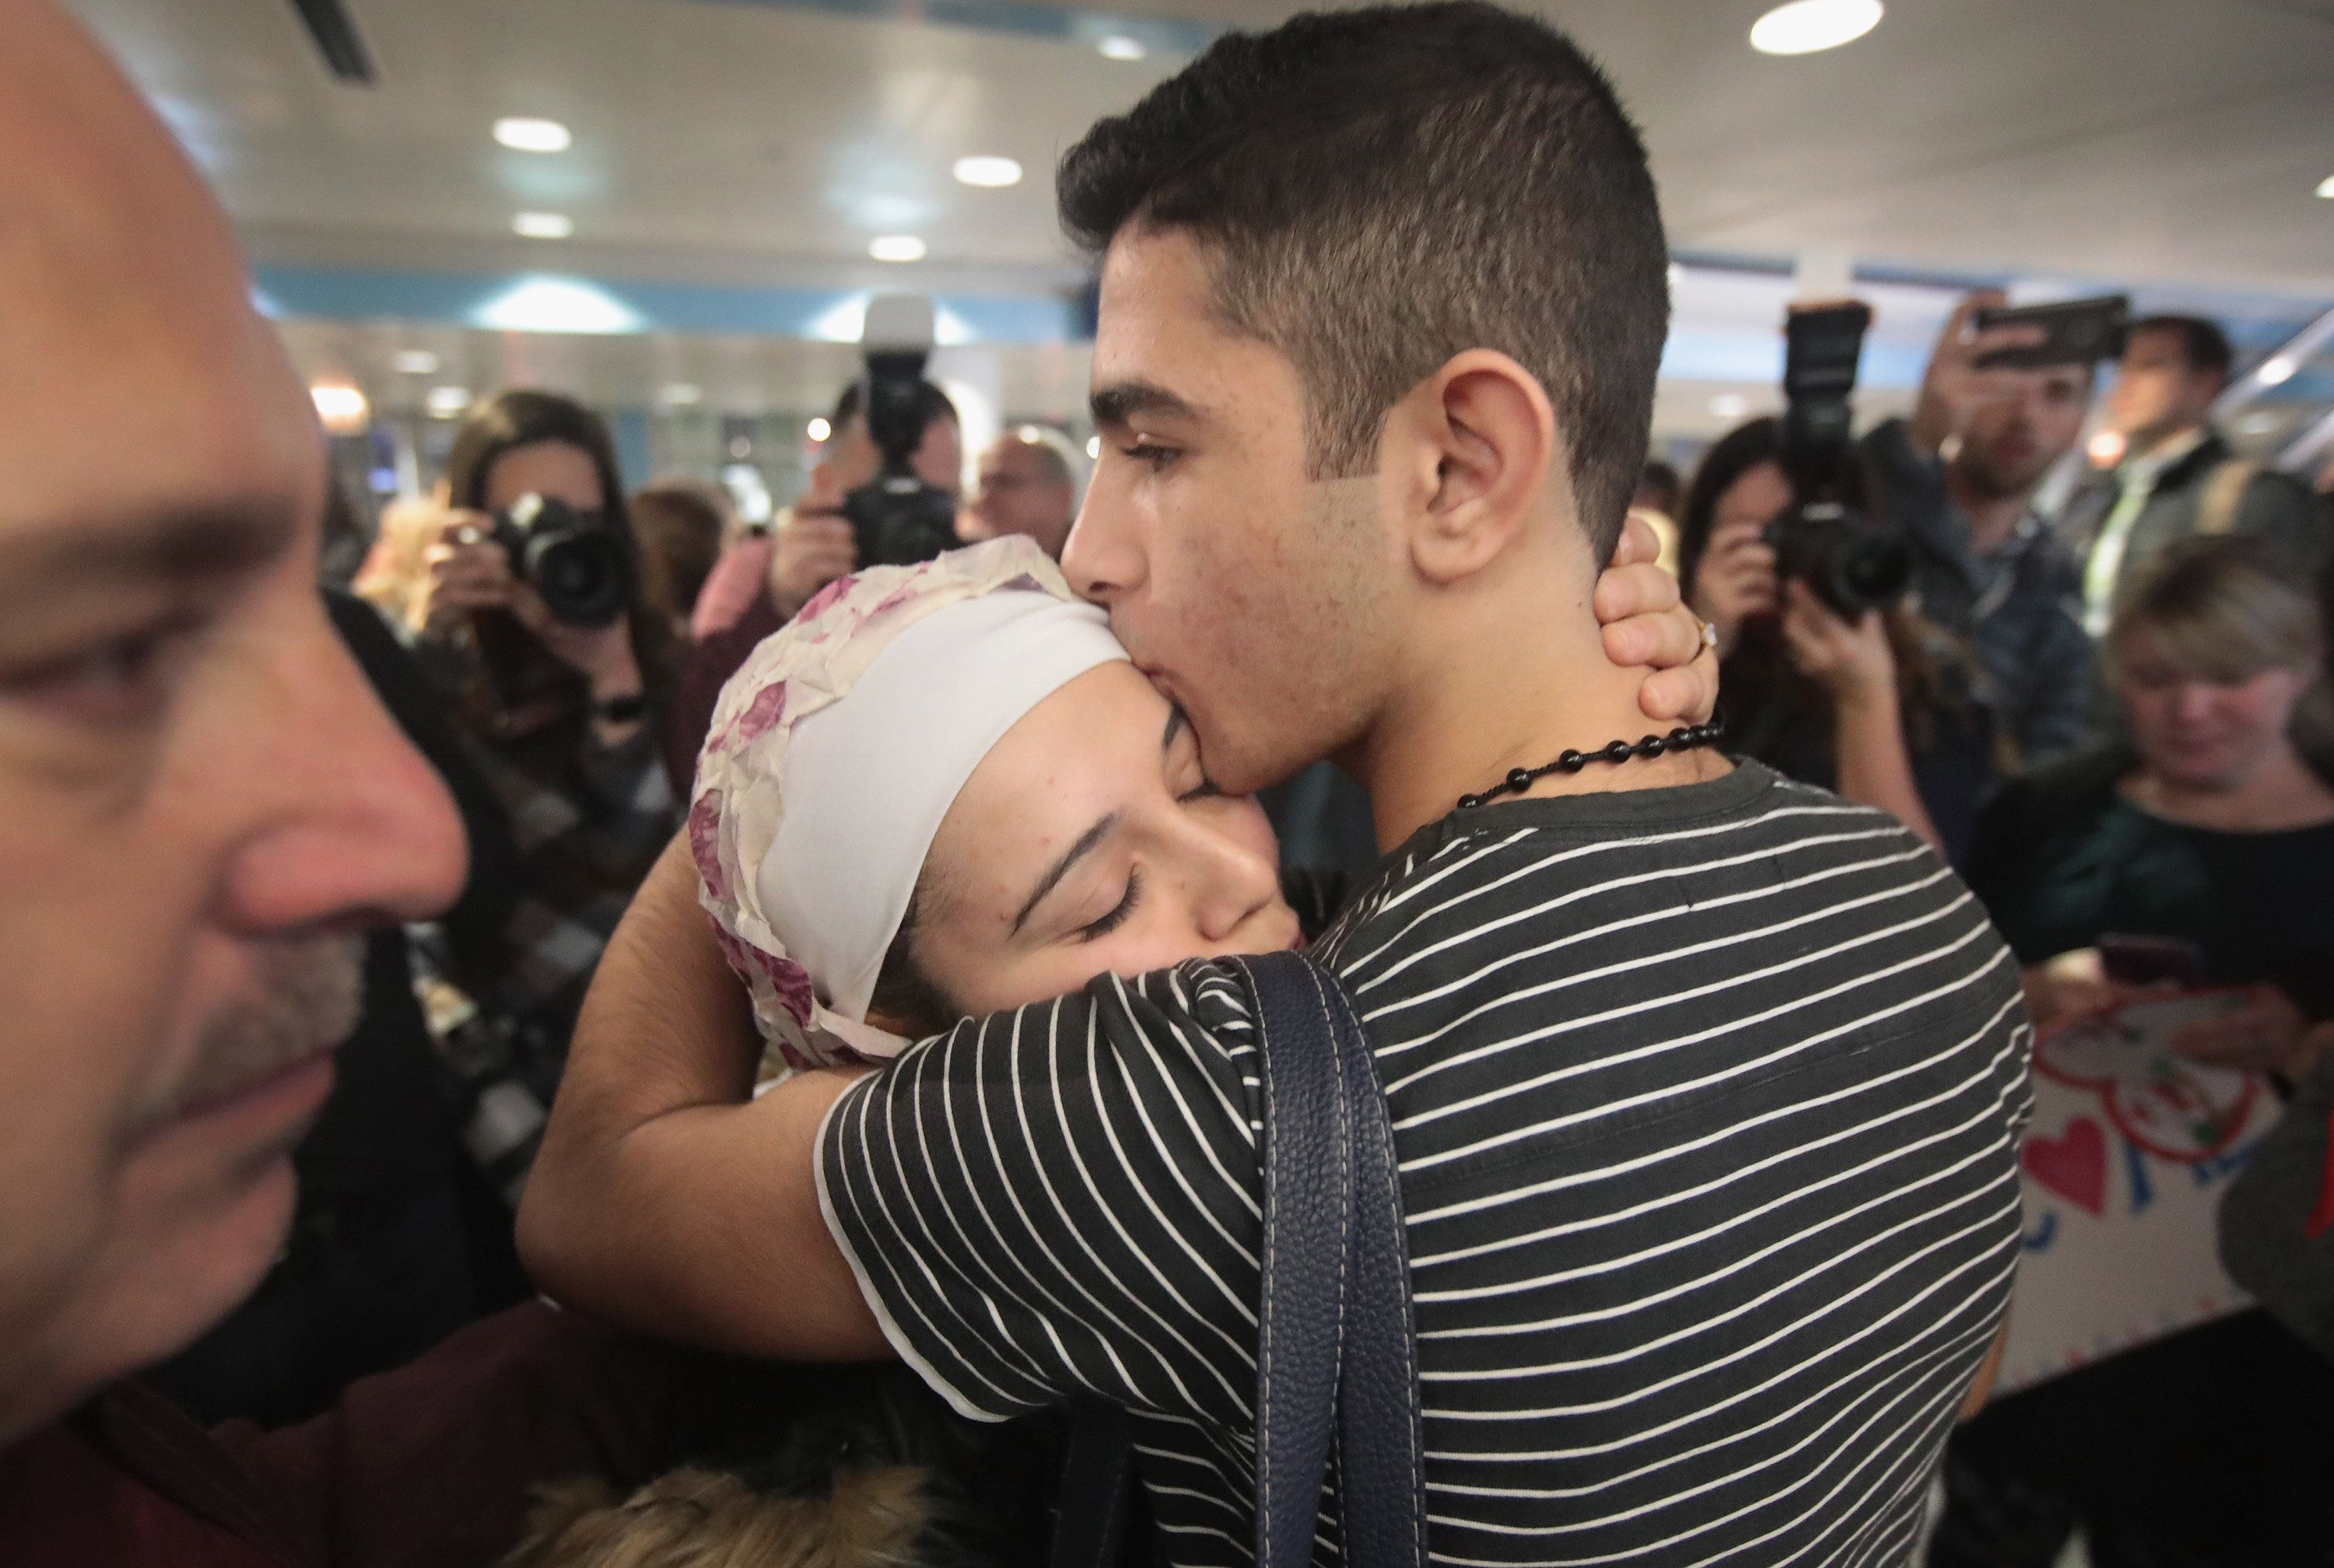 CHICAGO, IL - FEBRUARY 07:  Syrian refugee Baraa Haj Khalaf is greeted by her brother after arriving on a flight from Istanbul, Turkey at O'Hare Airport on February 7, 2017 in Chicago, Illinois. Khalaf had spent the last five years in a refugee camp in Turkey. Her trip to the United States, with her husband and young daughter, was recently suspended after President Donald Trump signed an executive order stopping Syrian refugees from entering the U.S..  (Photo by Scott Olson/Getty Images)